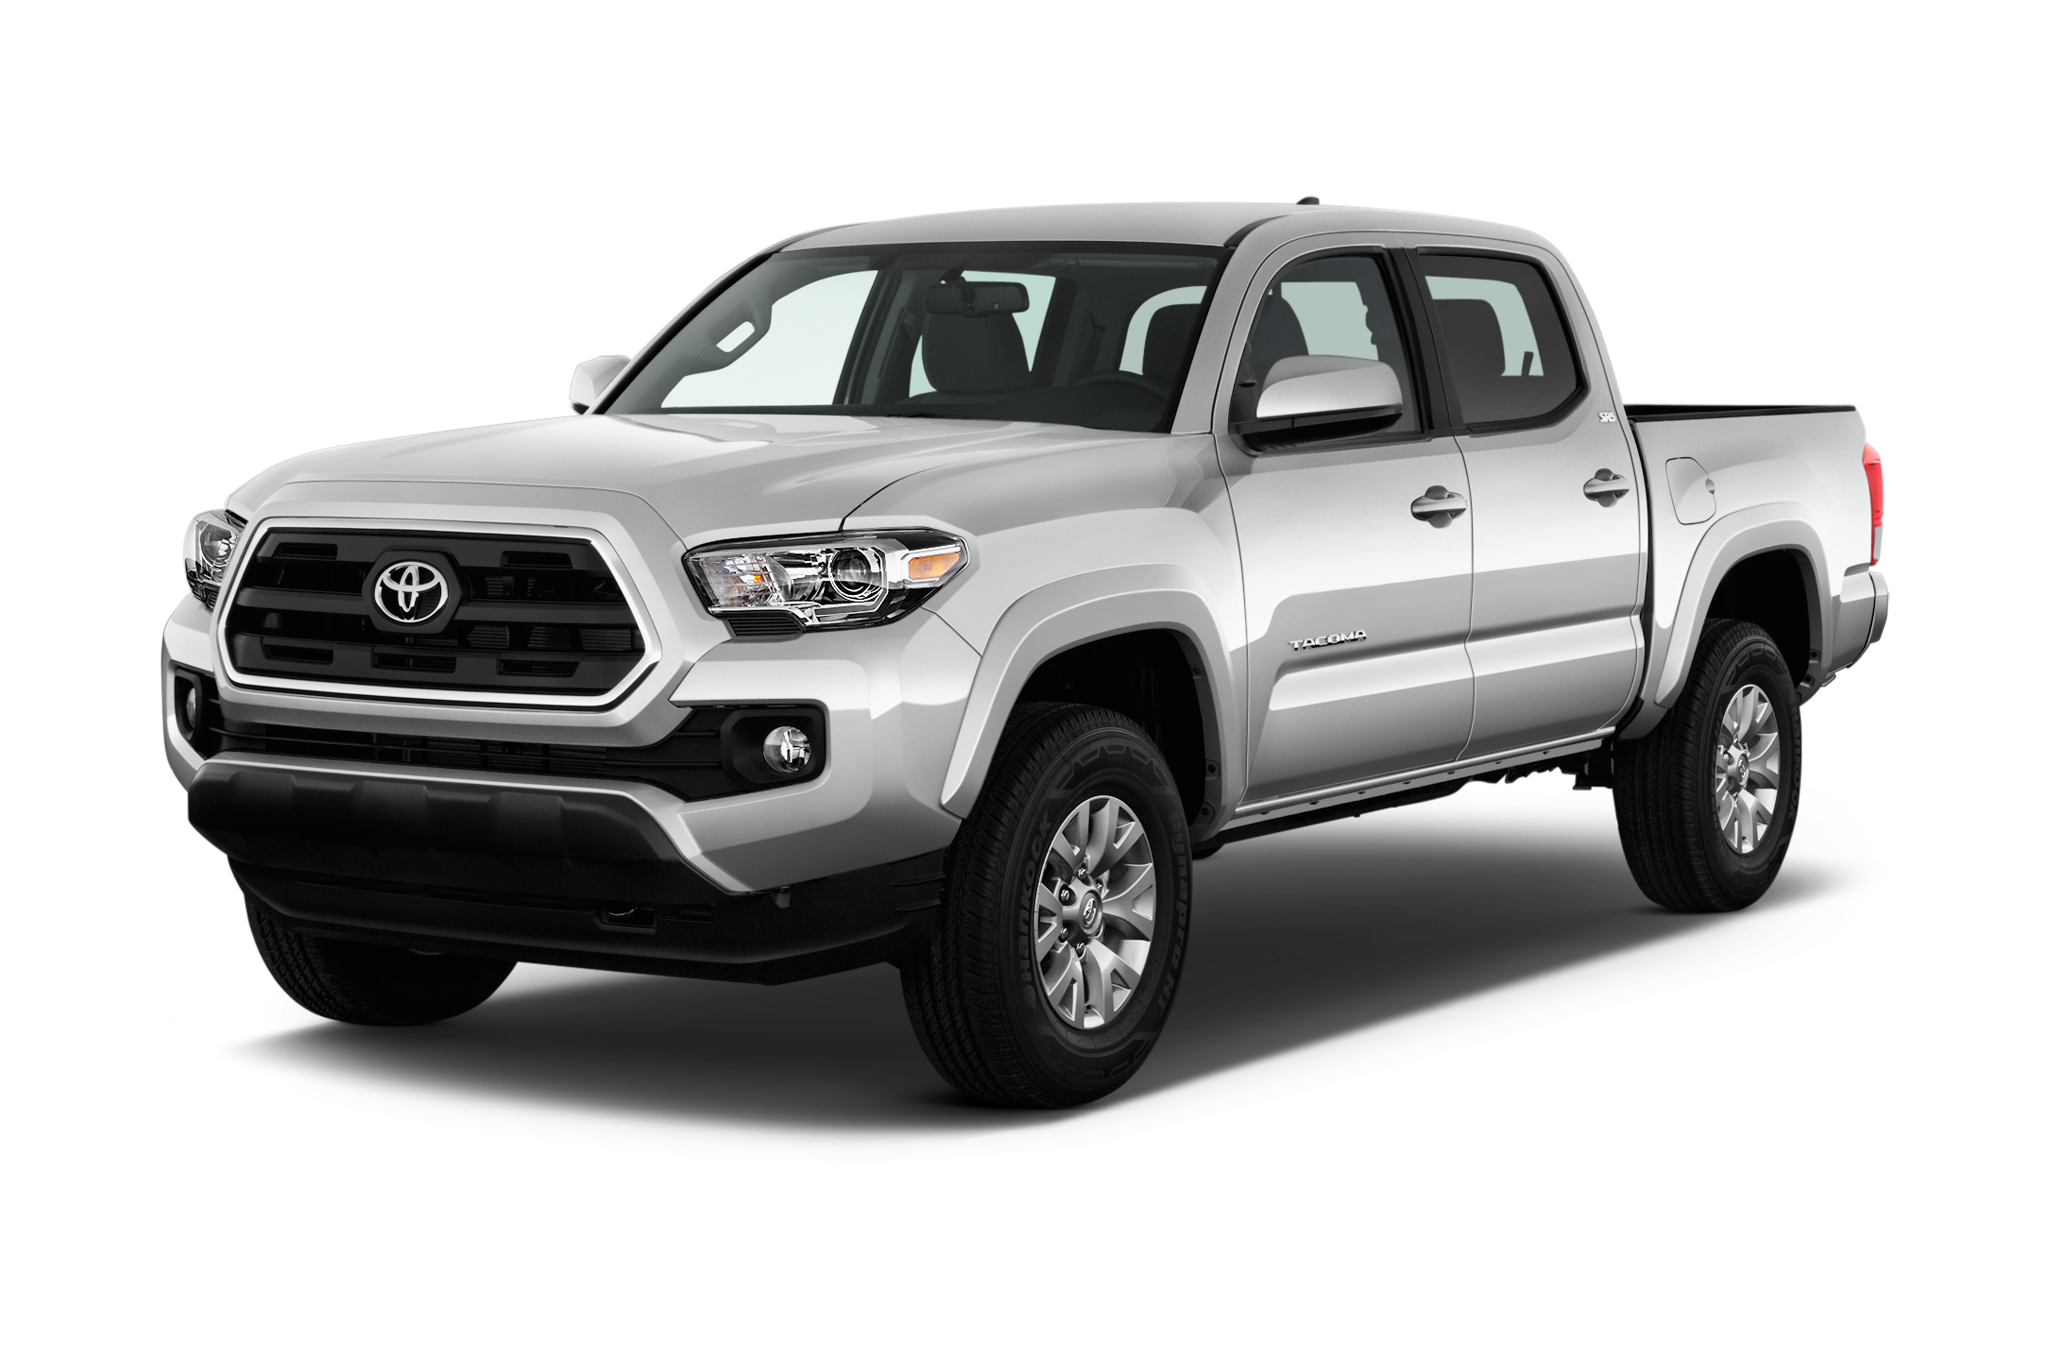 2017 toyota tacoma sr5 double cab 4x2 v6 auto lb interior. Black Bedroom Furniture Sets. Home Design Ideas